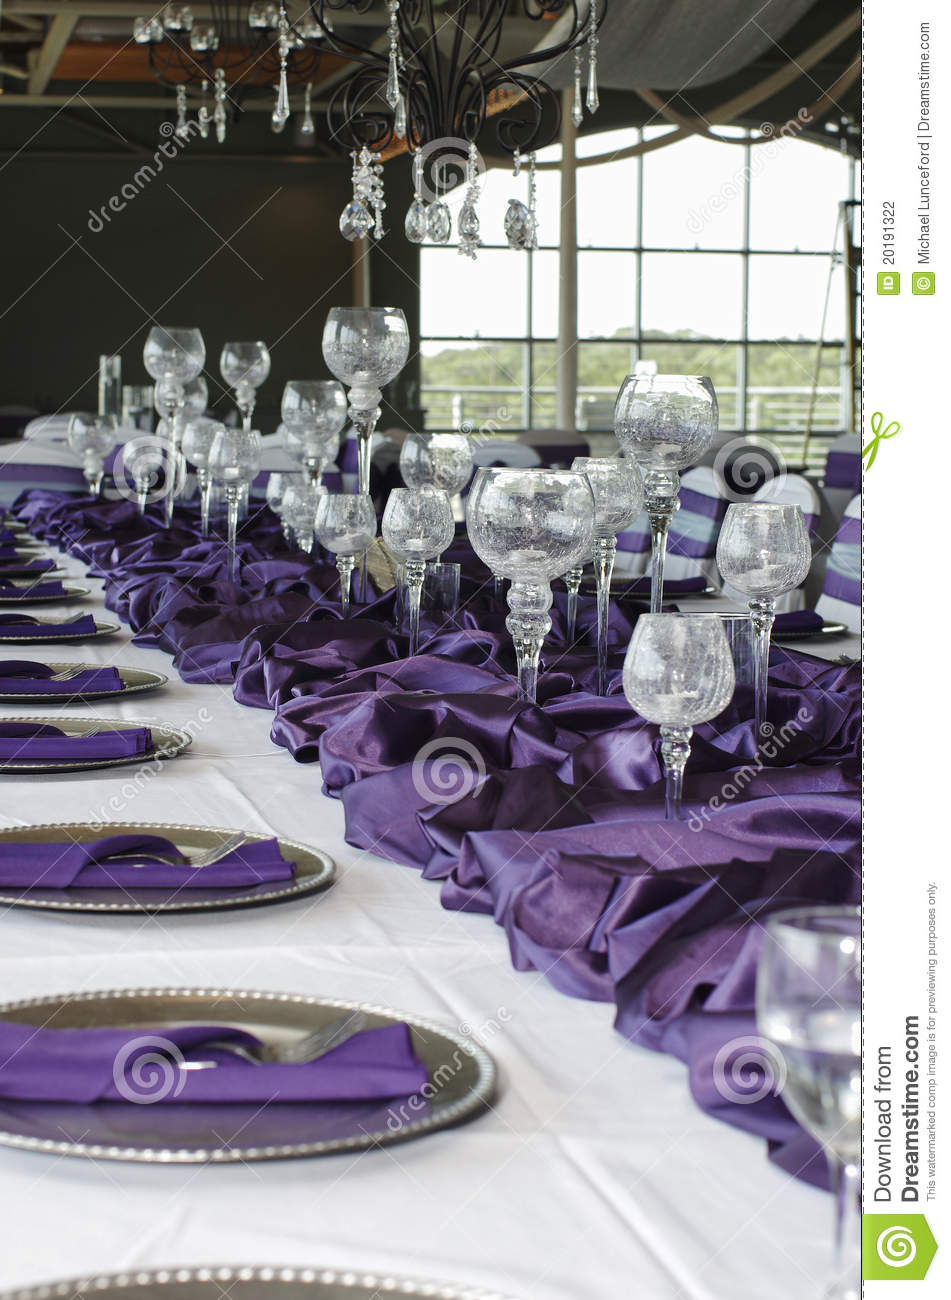 Vertical Table Setting for Wedding Purple & Vertical Table Setting For Wedding Purple Stock Photo - Image of ...